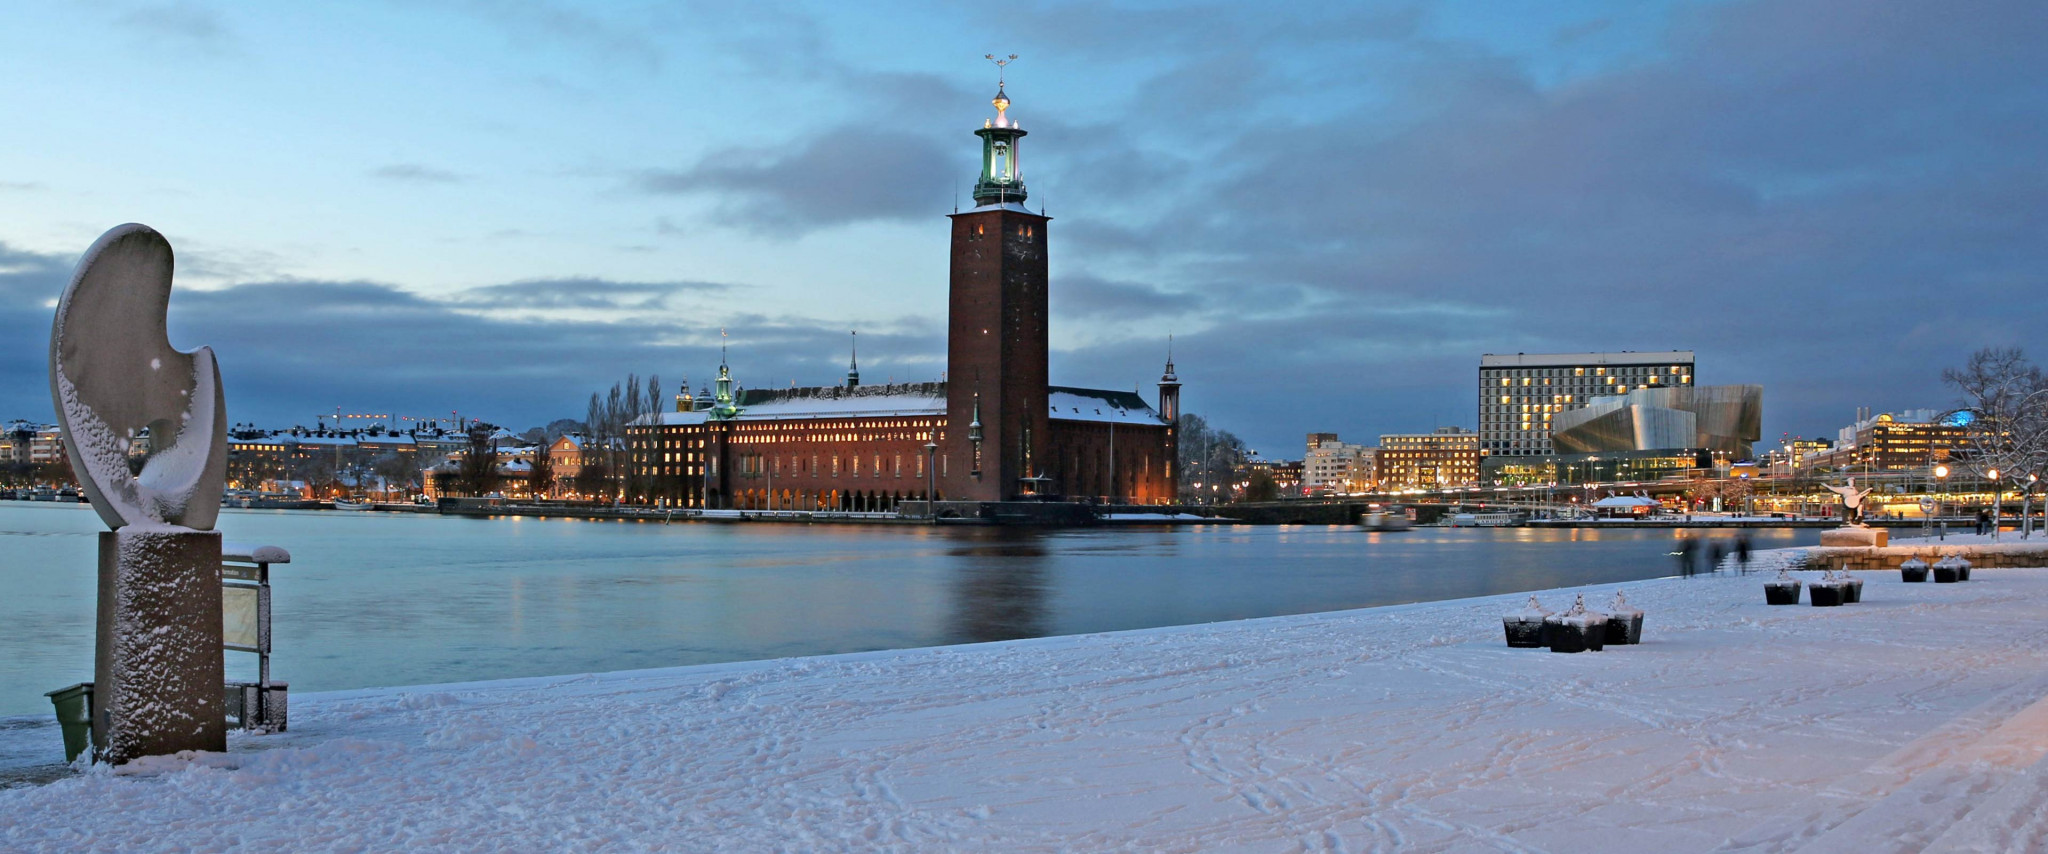 Stockholm is set to host the IOC Evaluation Commission visit ©IOC